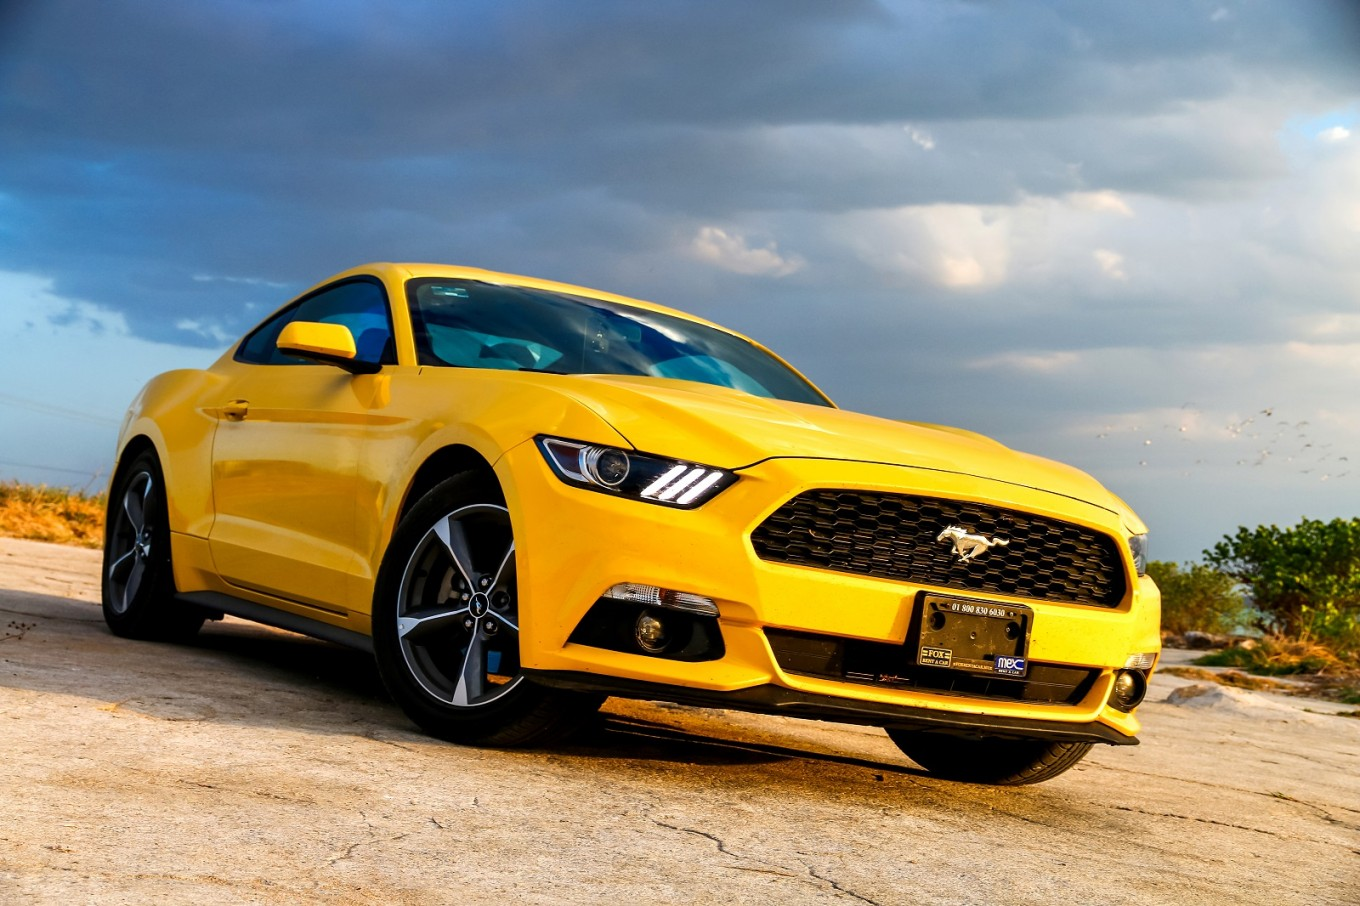 Ford unveils electric Mustang SUV to challenge Tesla dominance